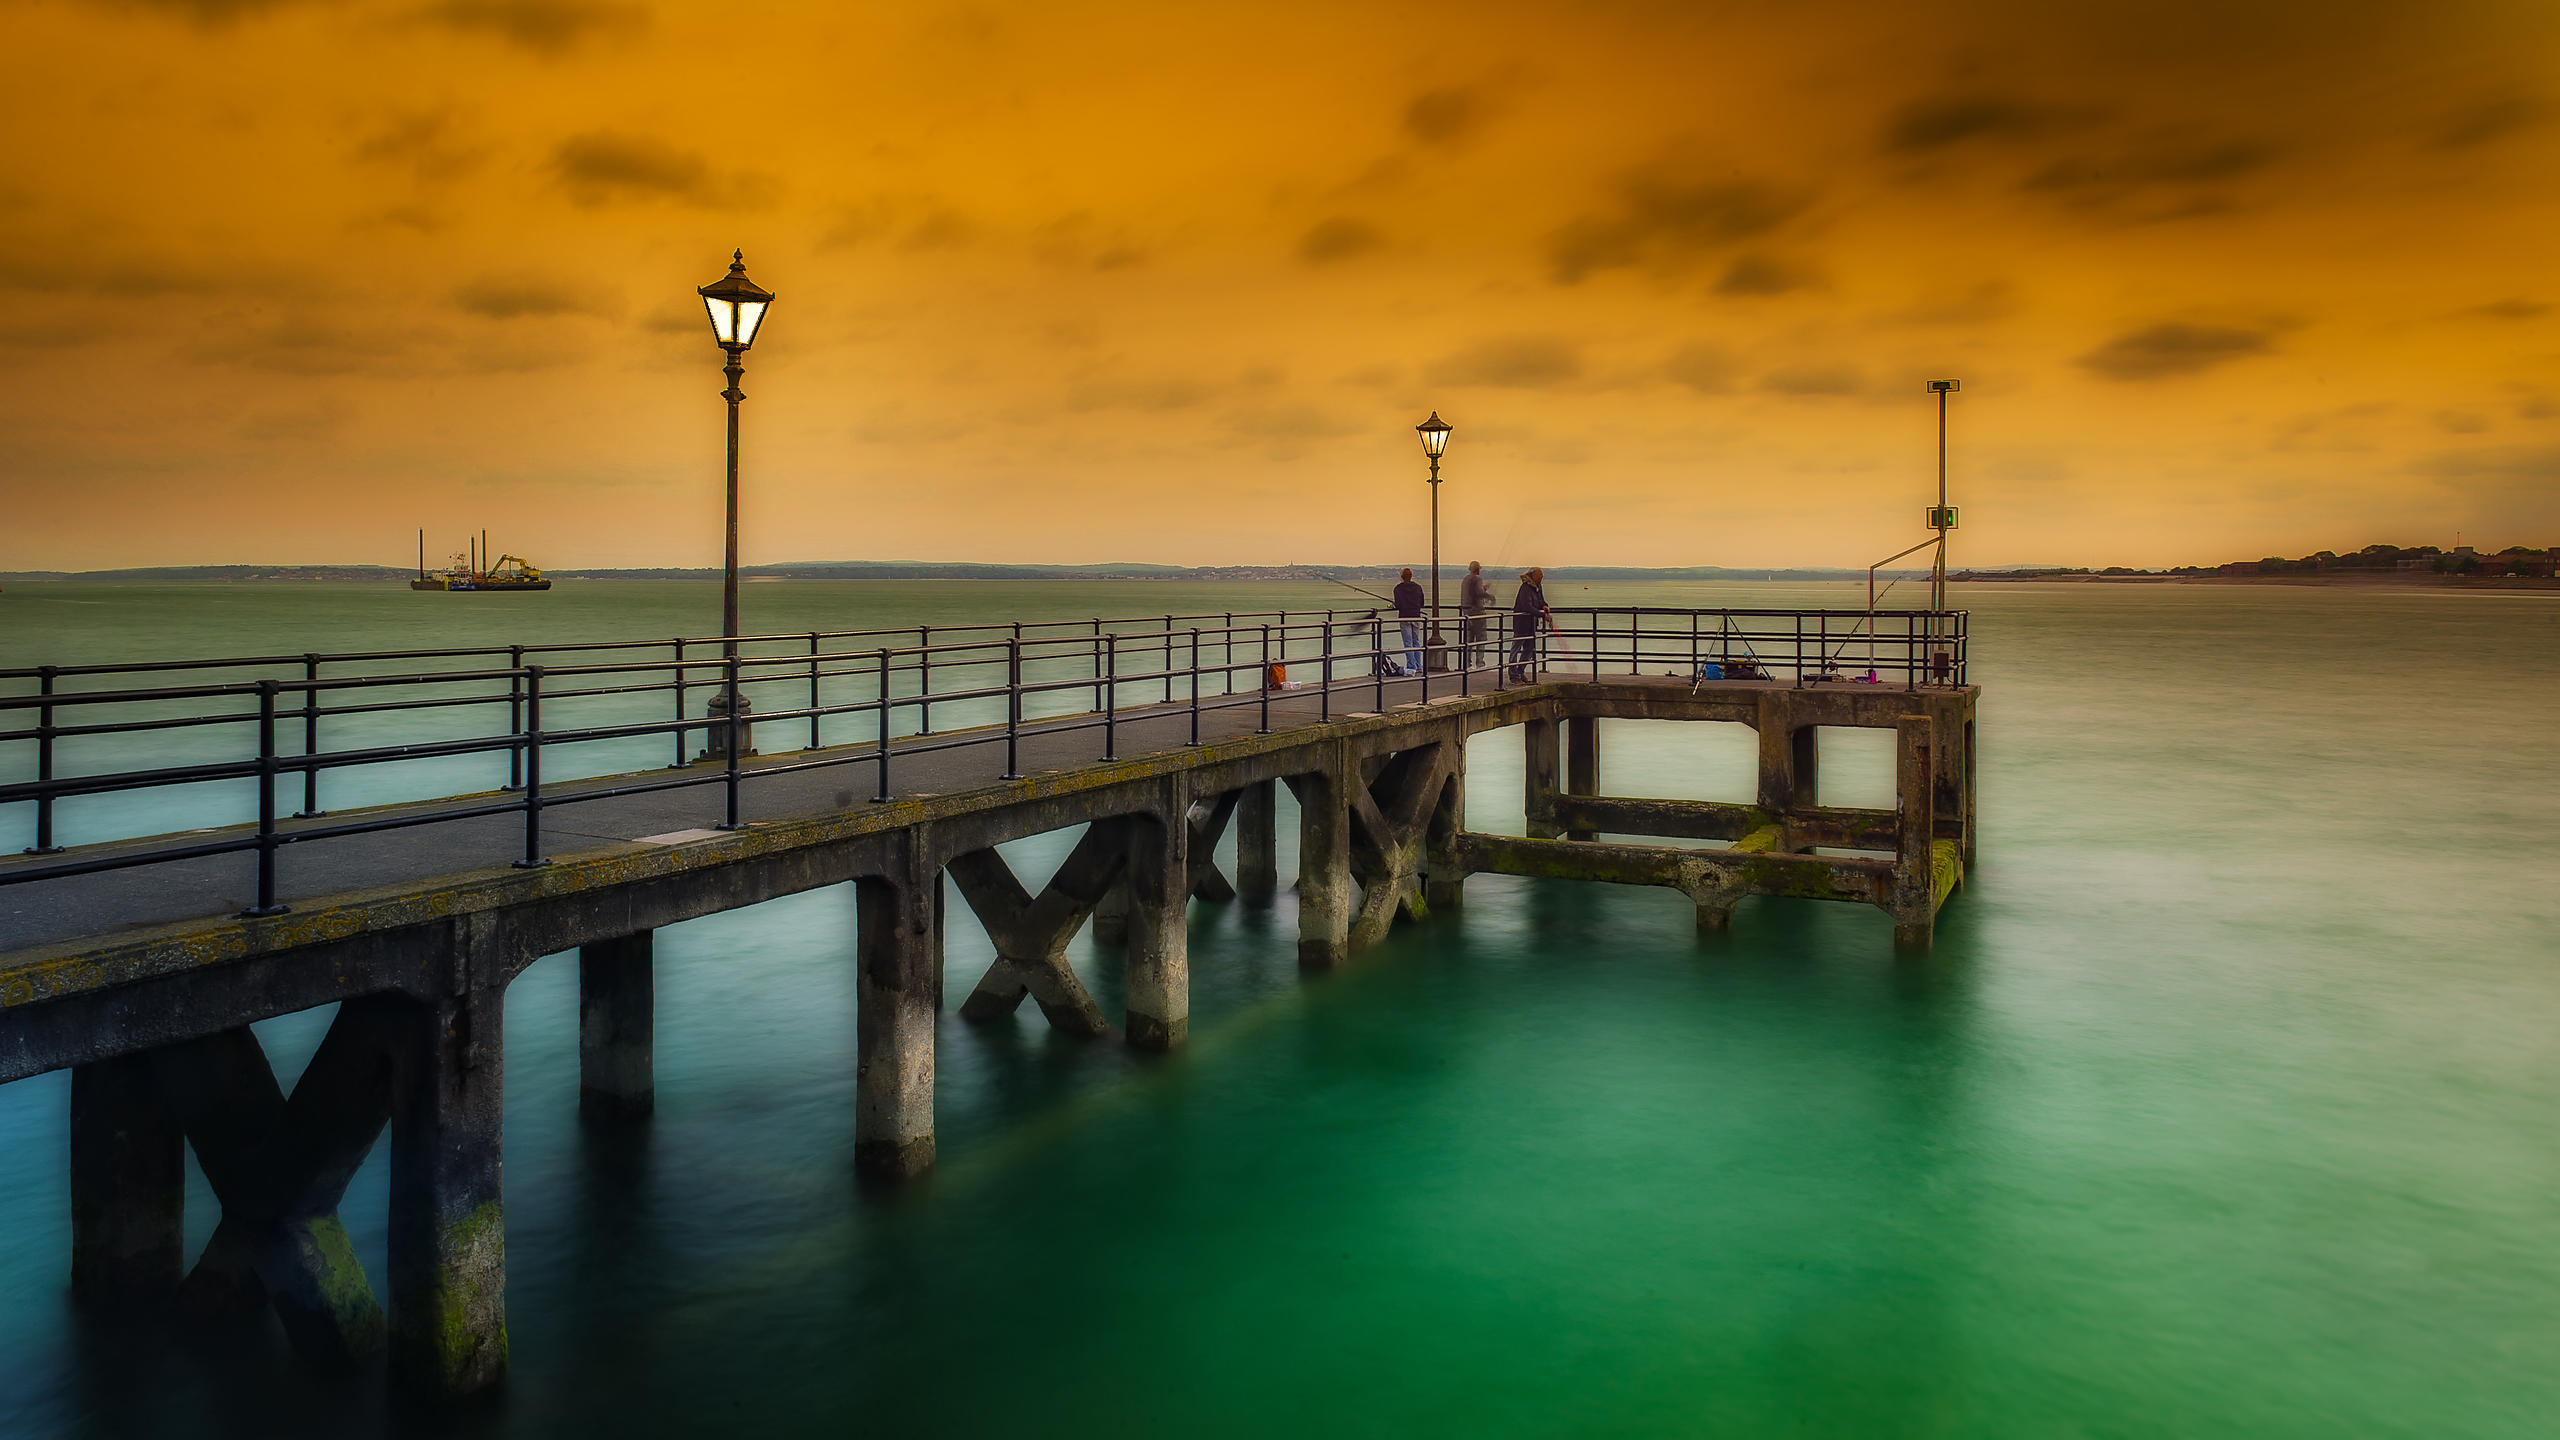 Powder Bridge at Sunset, in Portsmouth, England